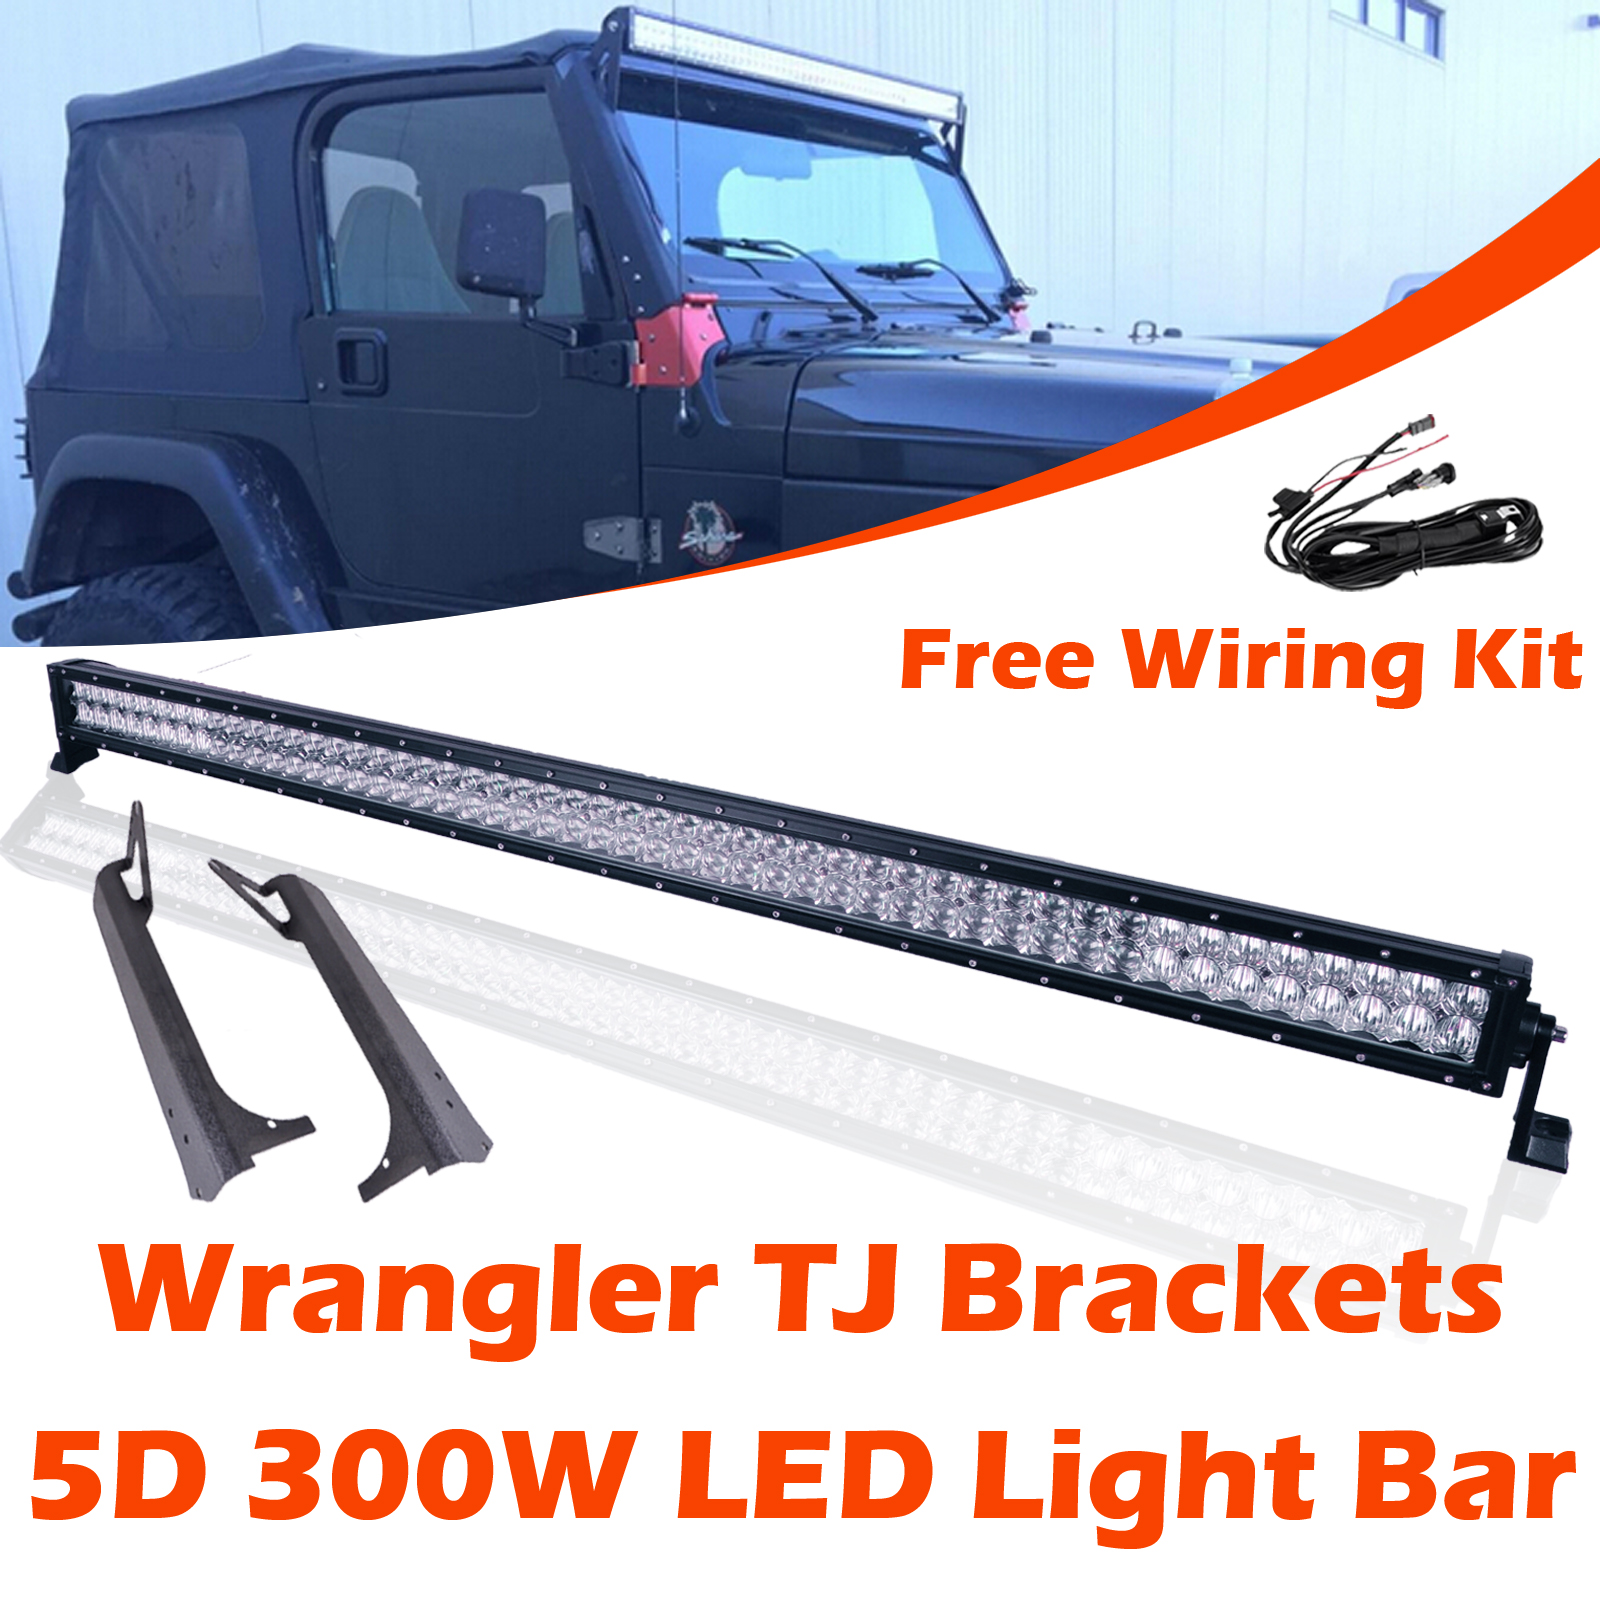 Omotor Jeep Wrangler Tj 5d 300w Cree Led Work Light Bar With Fog Wiring Windshield Mounting Brackets Free Kit Waterproof Dustproof 2 Years Warranty Walmart